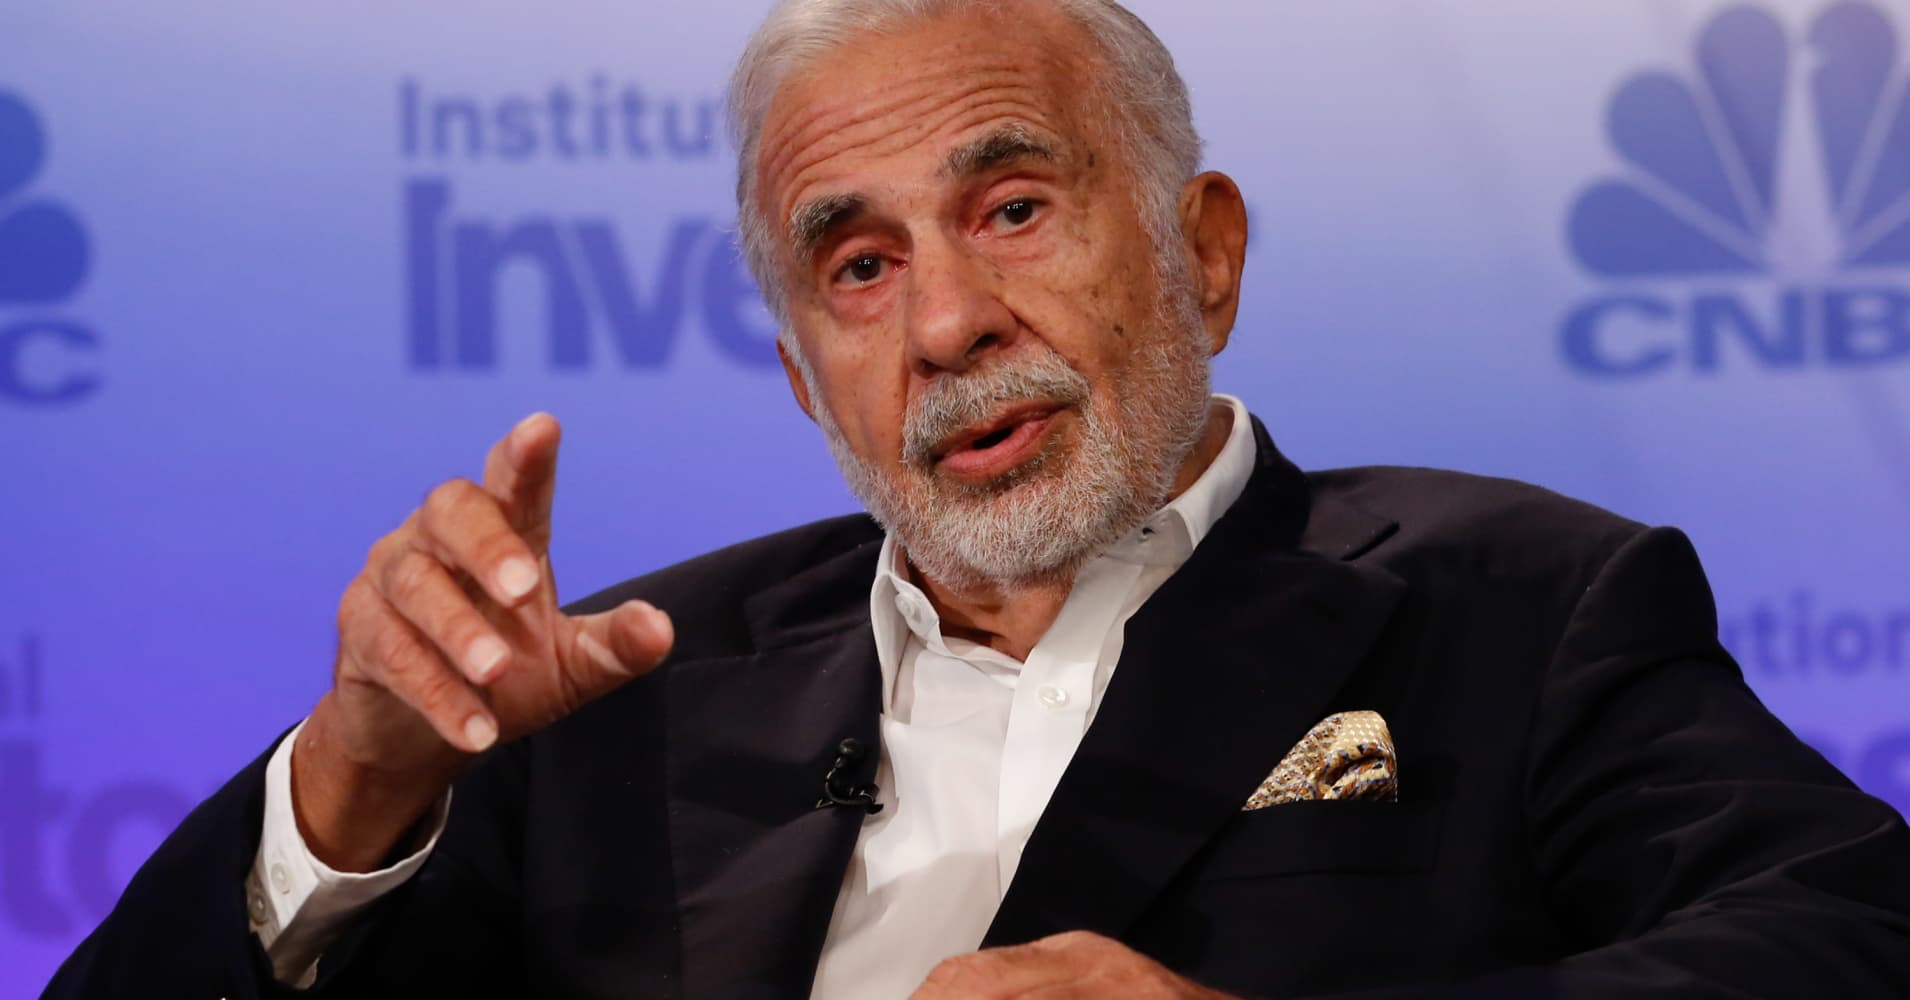 Carl Icahn: One day the market will 'implode' because of derivatives